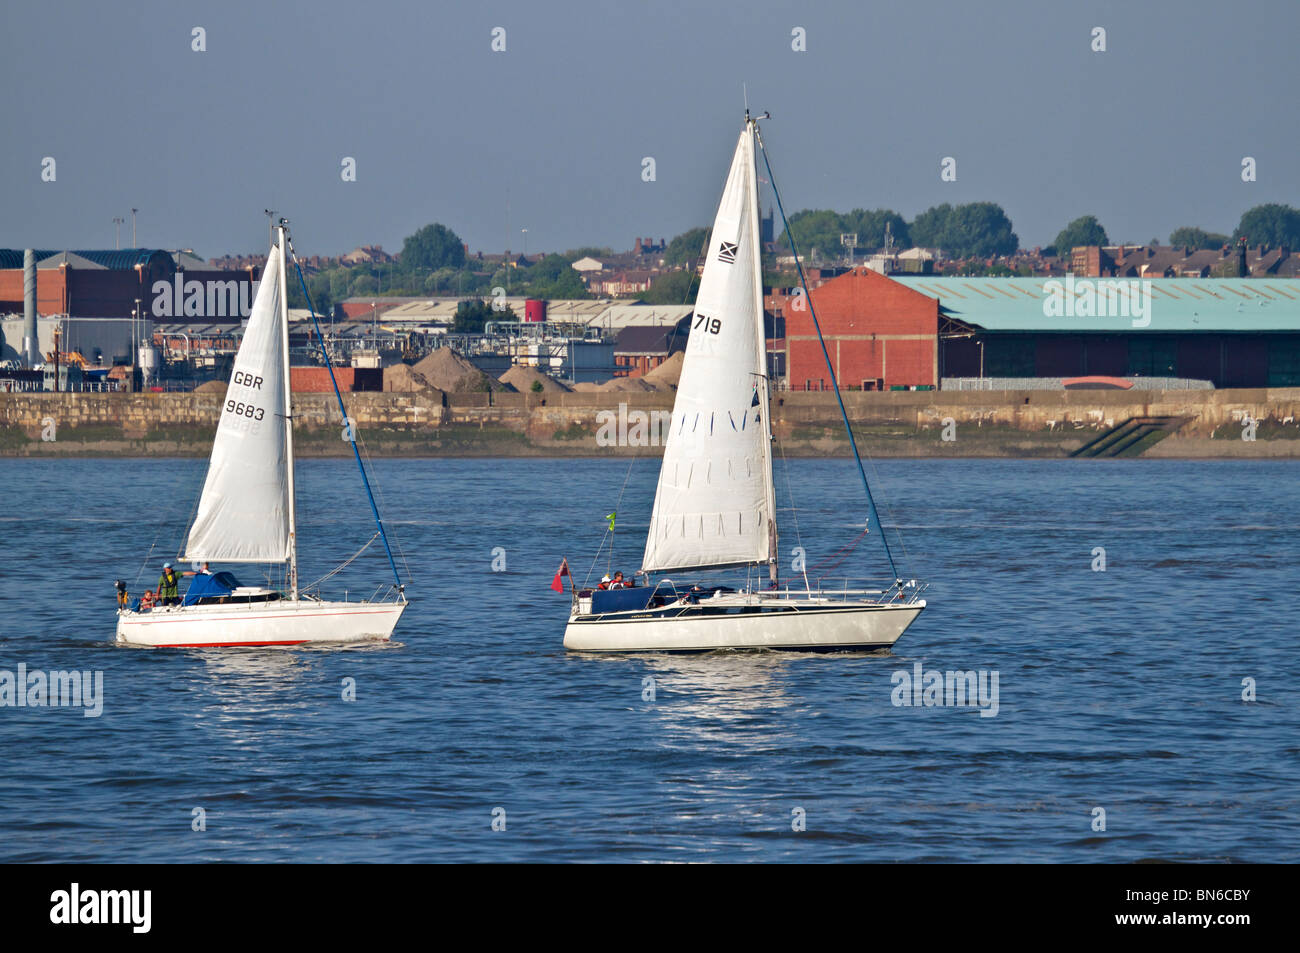 Two small sailing boats racing in river Mersey on a bright sunny evening. - Stock Image